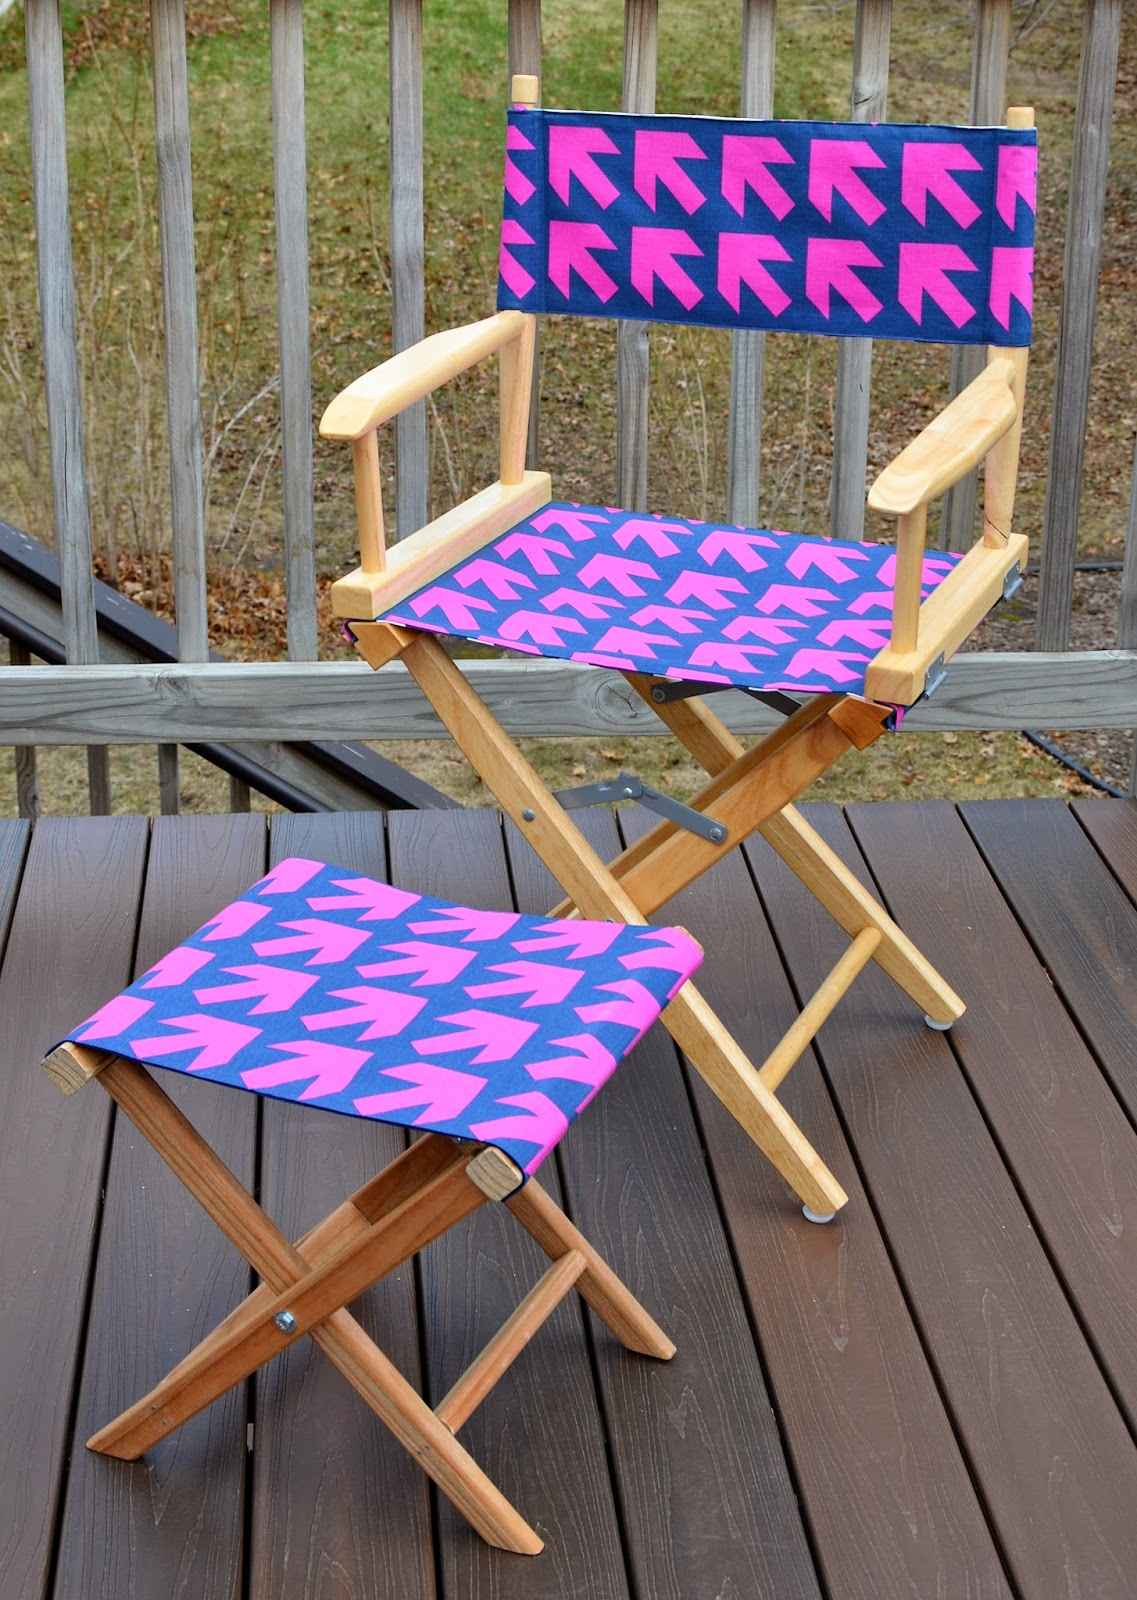 They Also Make Good Footrests For The Directoru0027s Chair In Yesterdayu0027s Post.